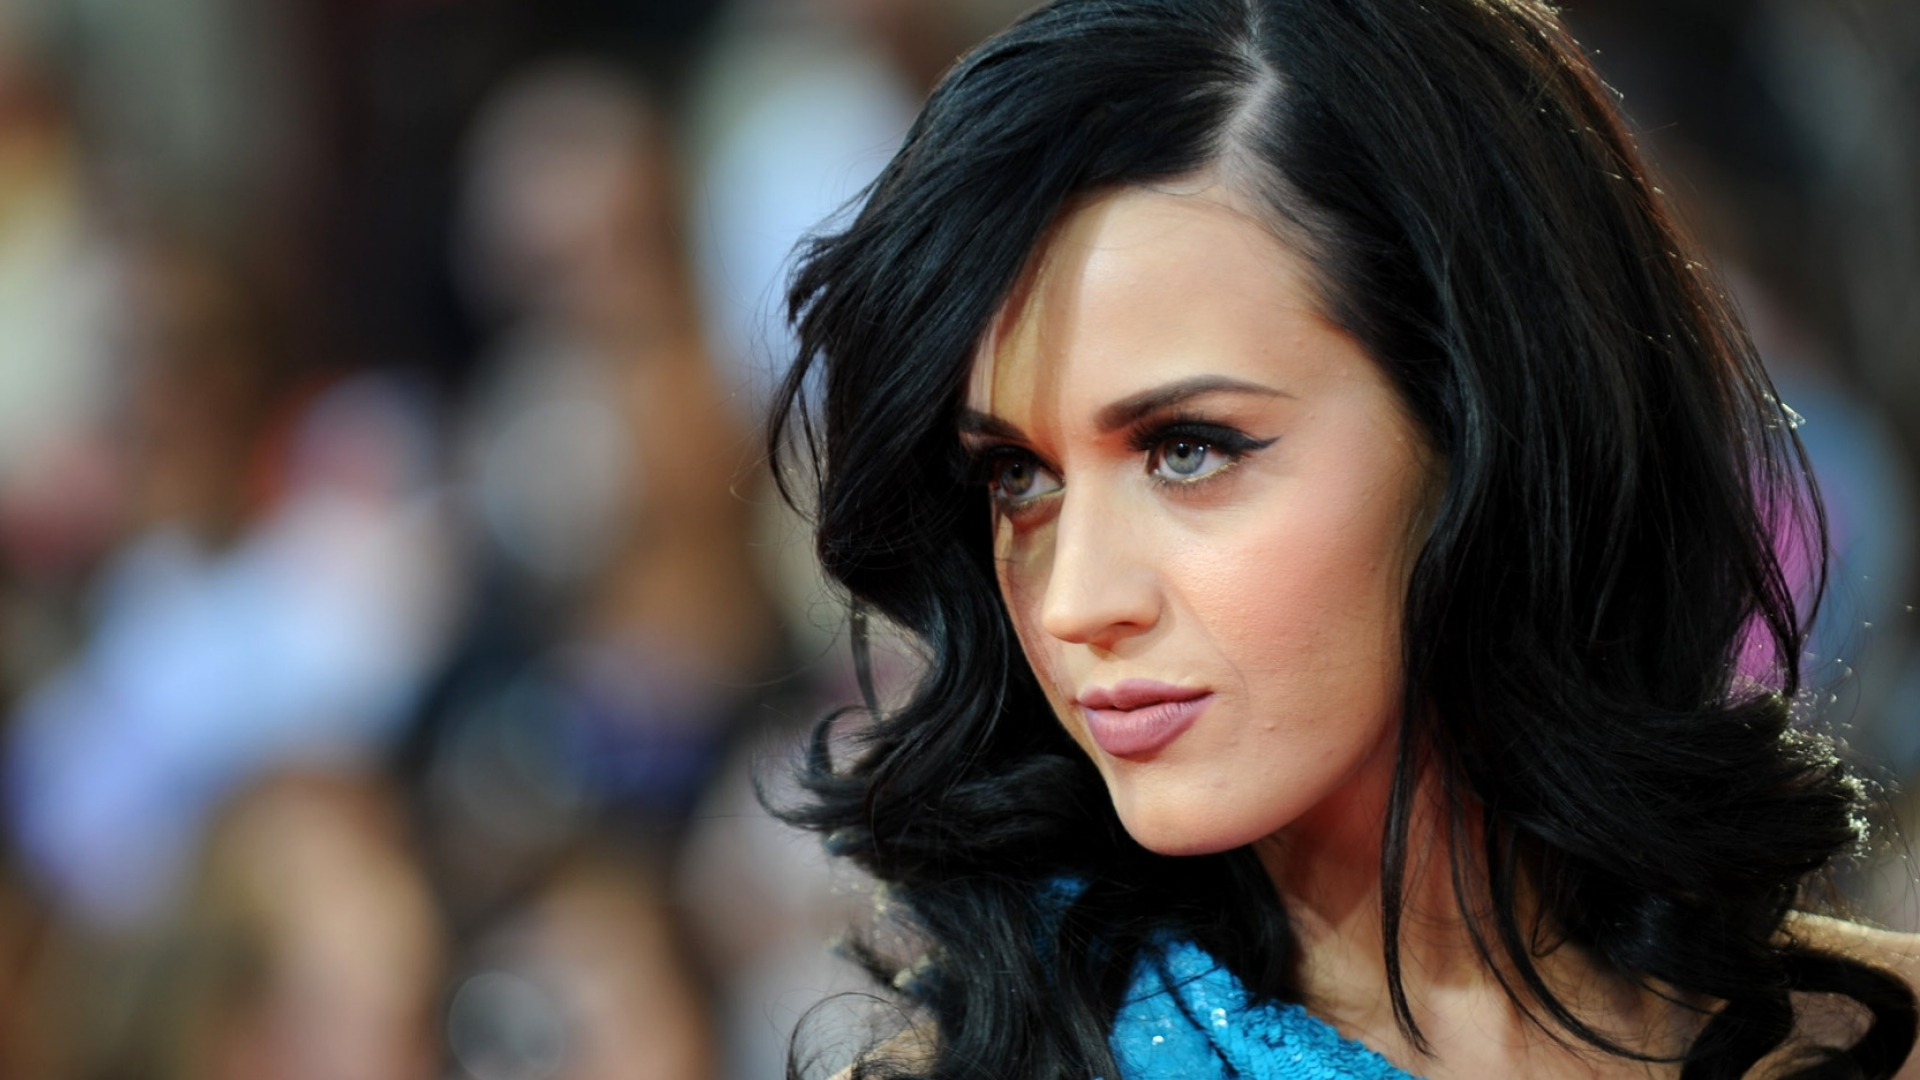 Katy Perry Face Wallpaper